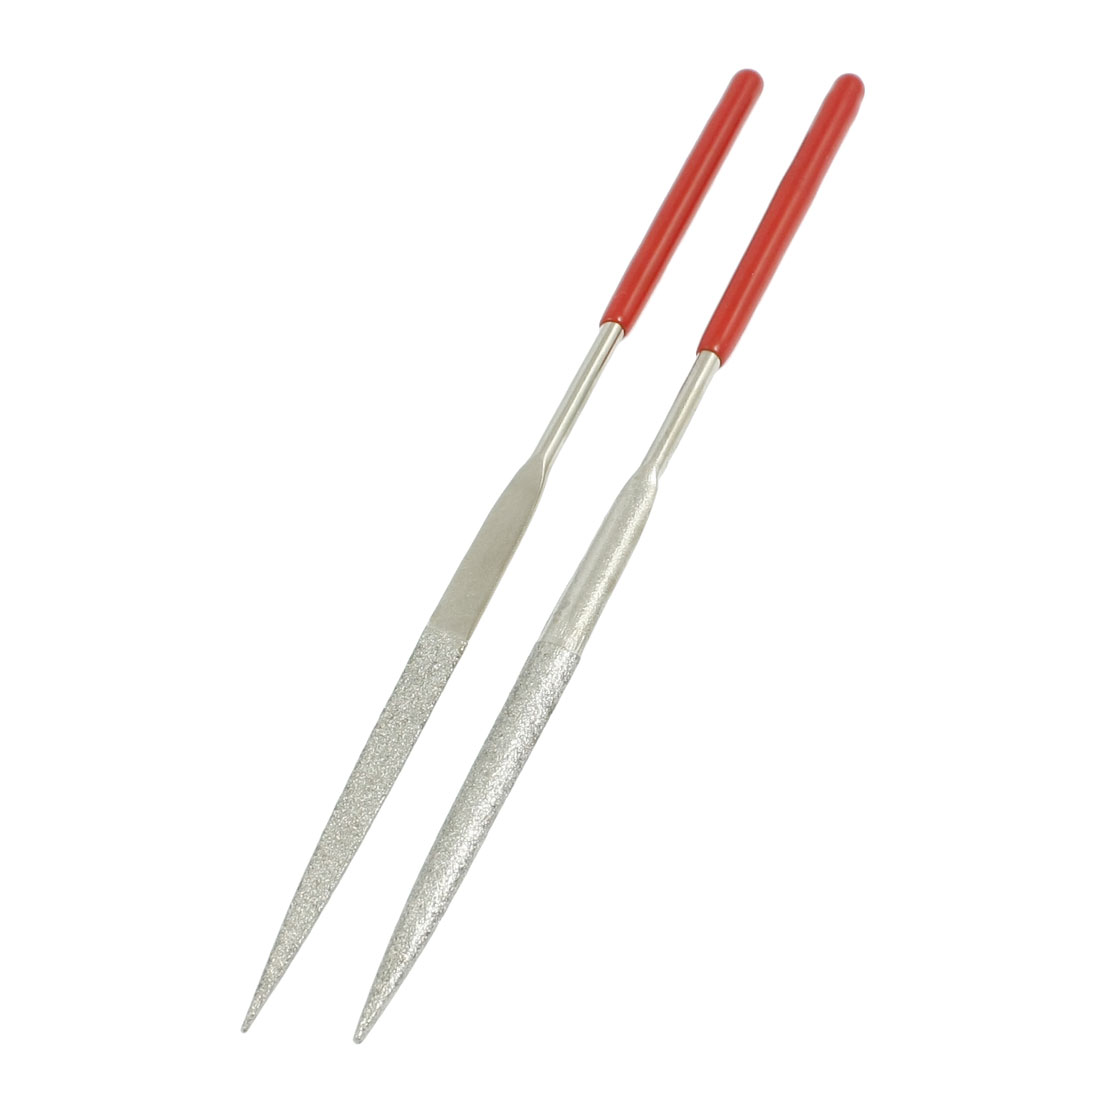 3mm x 140mm Craft Making Hand Tool Half Round Needle Files 2 Pcs